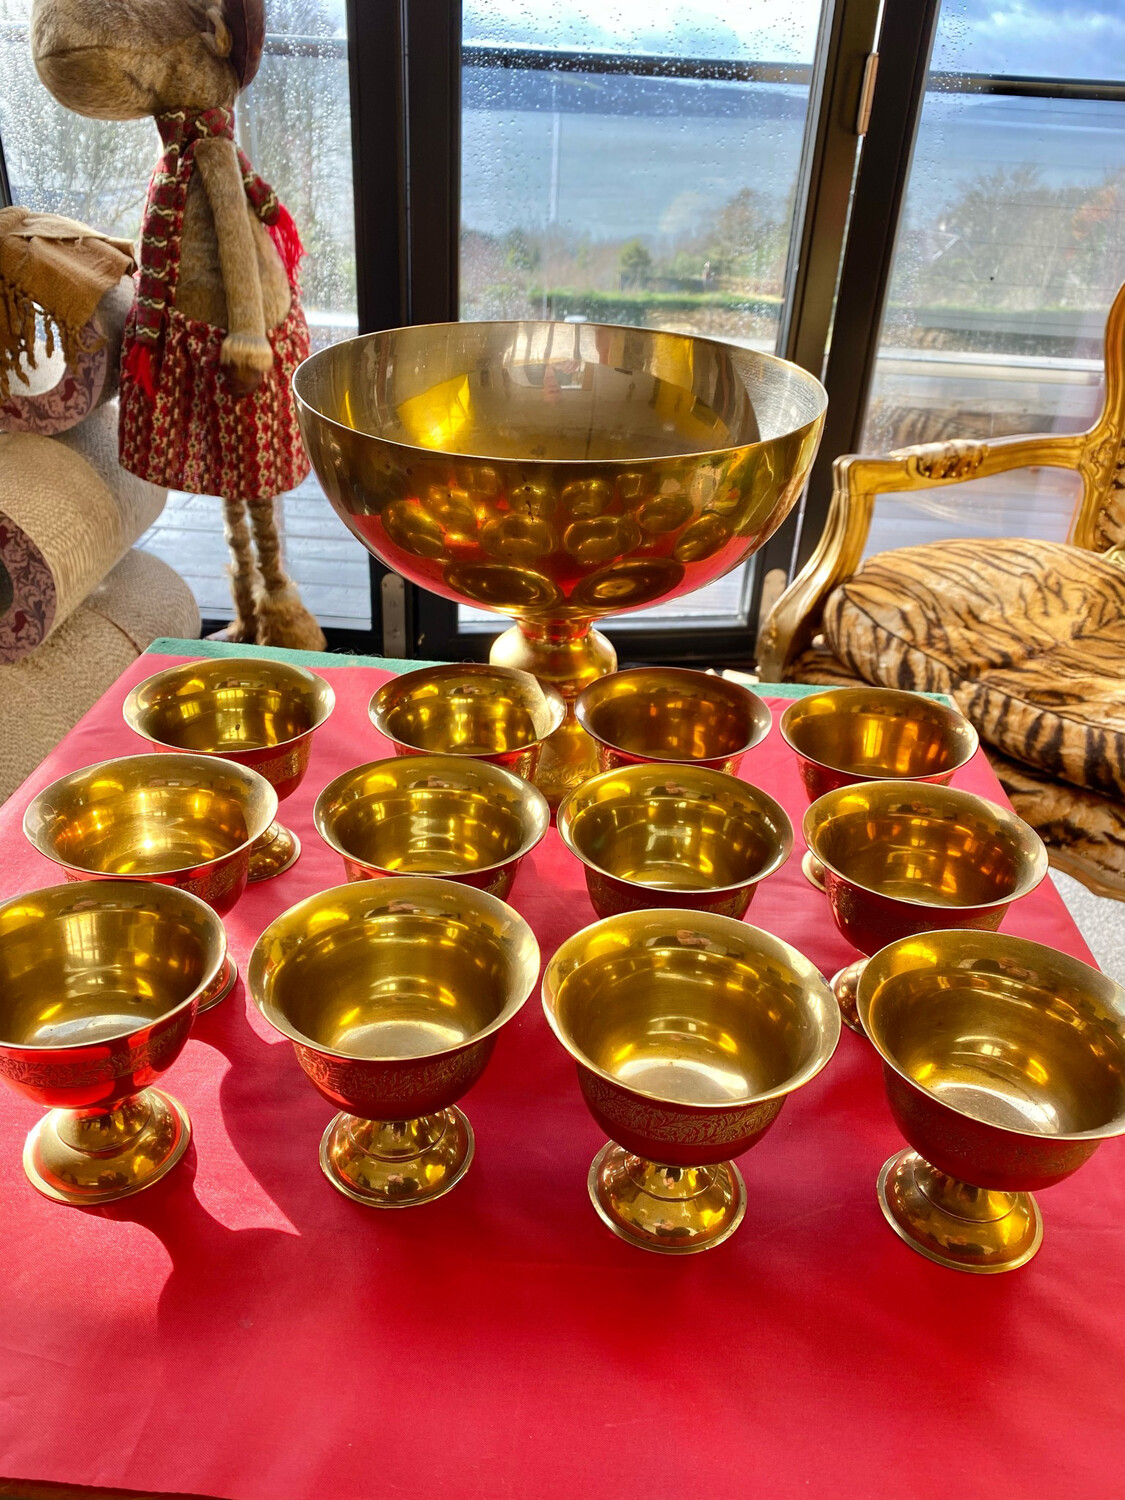 Magnificent Brass Punch Set Comprising 12 Goblets And Large Brass Bowl